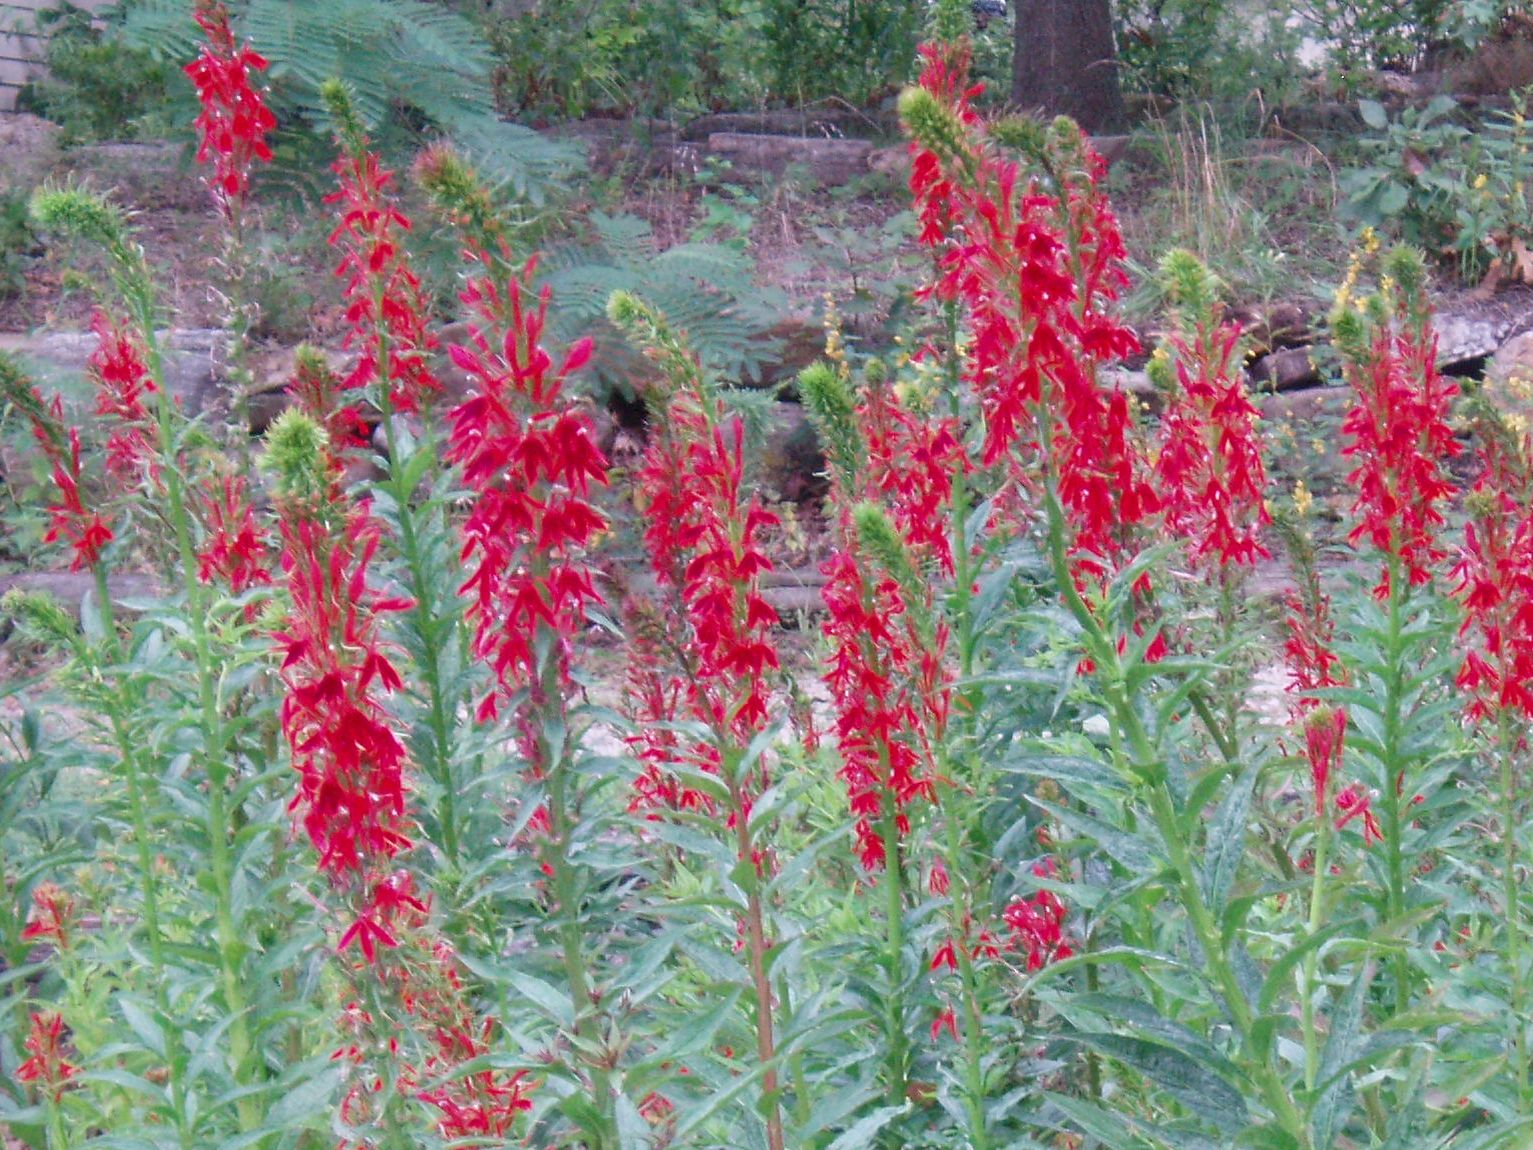 "{""blocks"":[{""key"":""eku0g"",""text"":"" Lobelia cardinalis Red Cardinal Flower - potted plants email john@easywildflowers.com  "",""type"":""unstyled"",""depth"":0,""inlineStyleRanges"":[],""entityRanges"":[],""data"":{}}],""entityMap"":{}}"